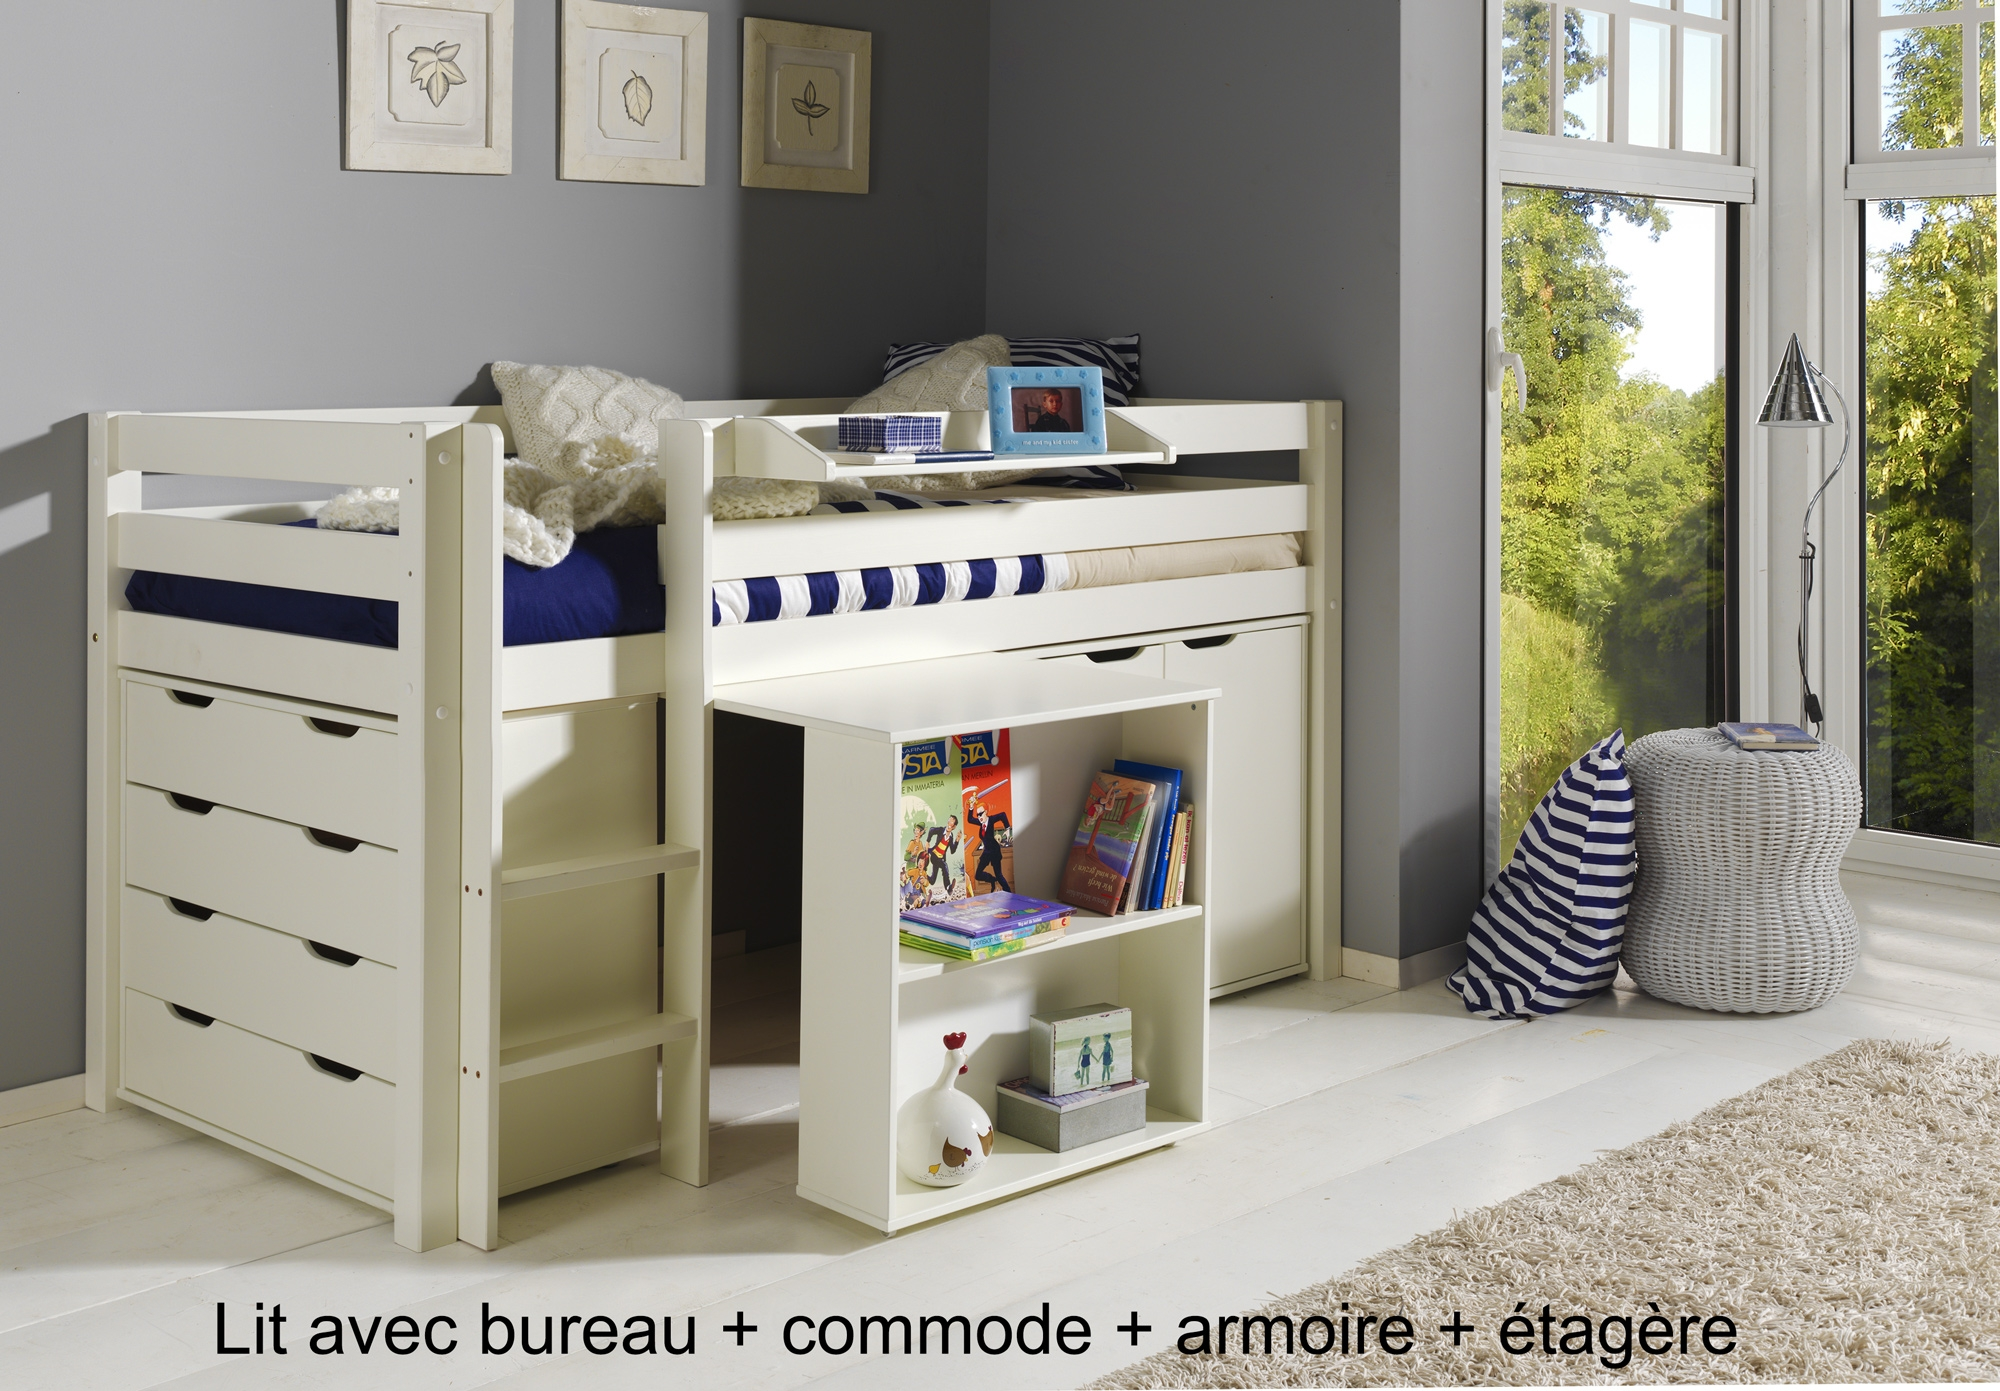 bureau lit lit bureau enfant un mini bureau et un mini lit armoire lit bureau 1 ensemble lit. Black Bedroom Furniture Sets. Home Design Ideas